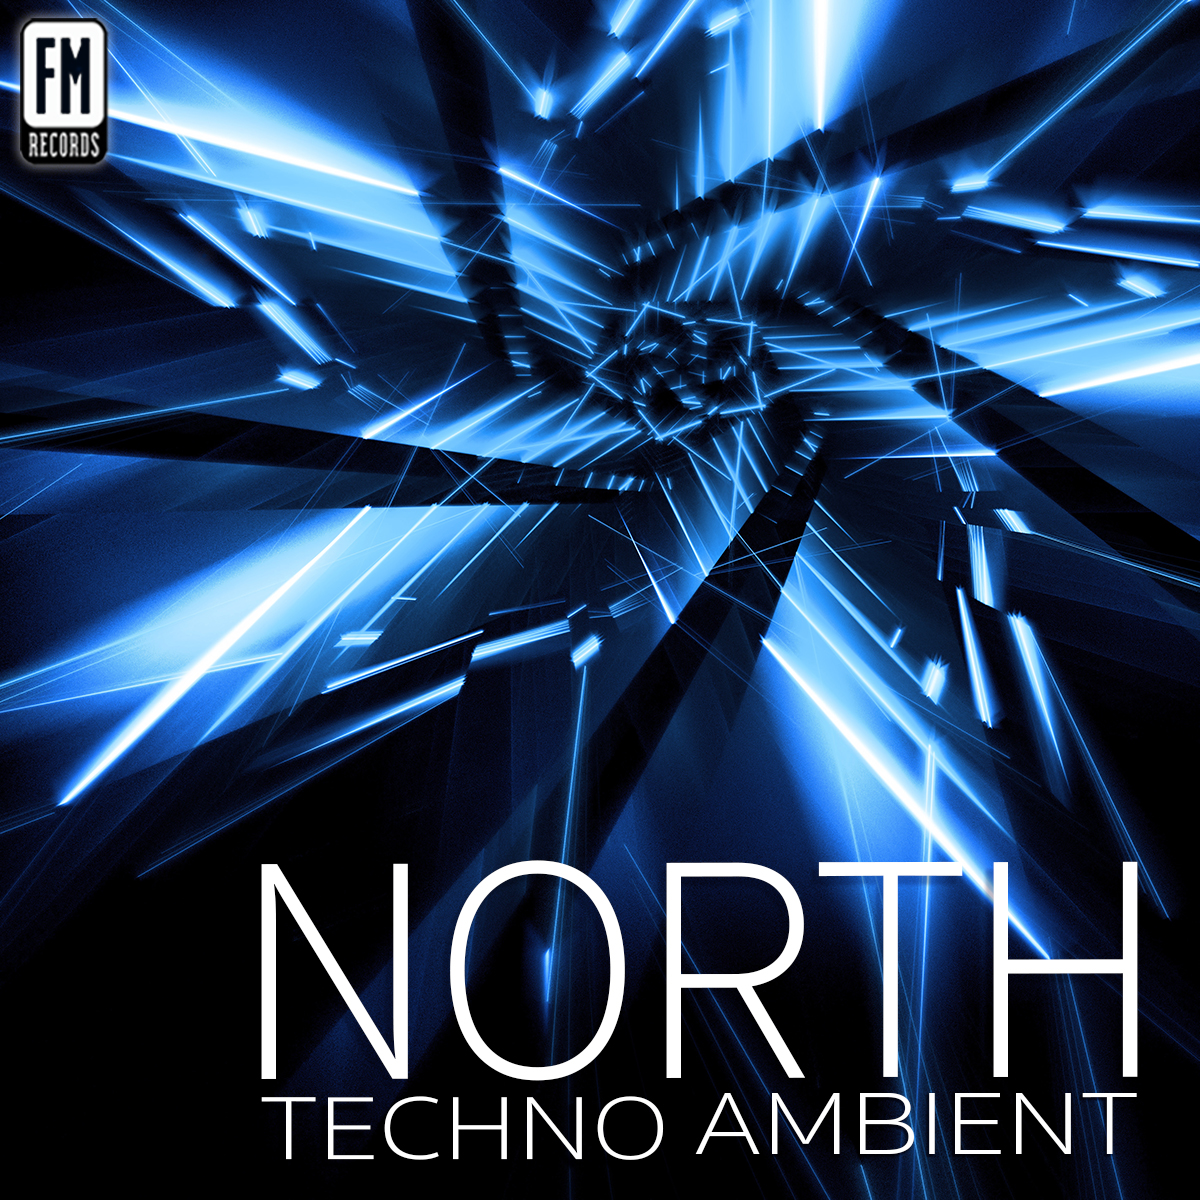 North Techno Ambient